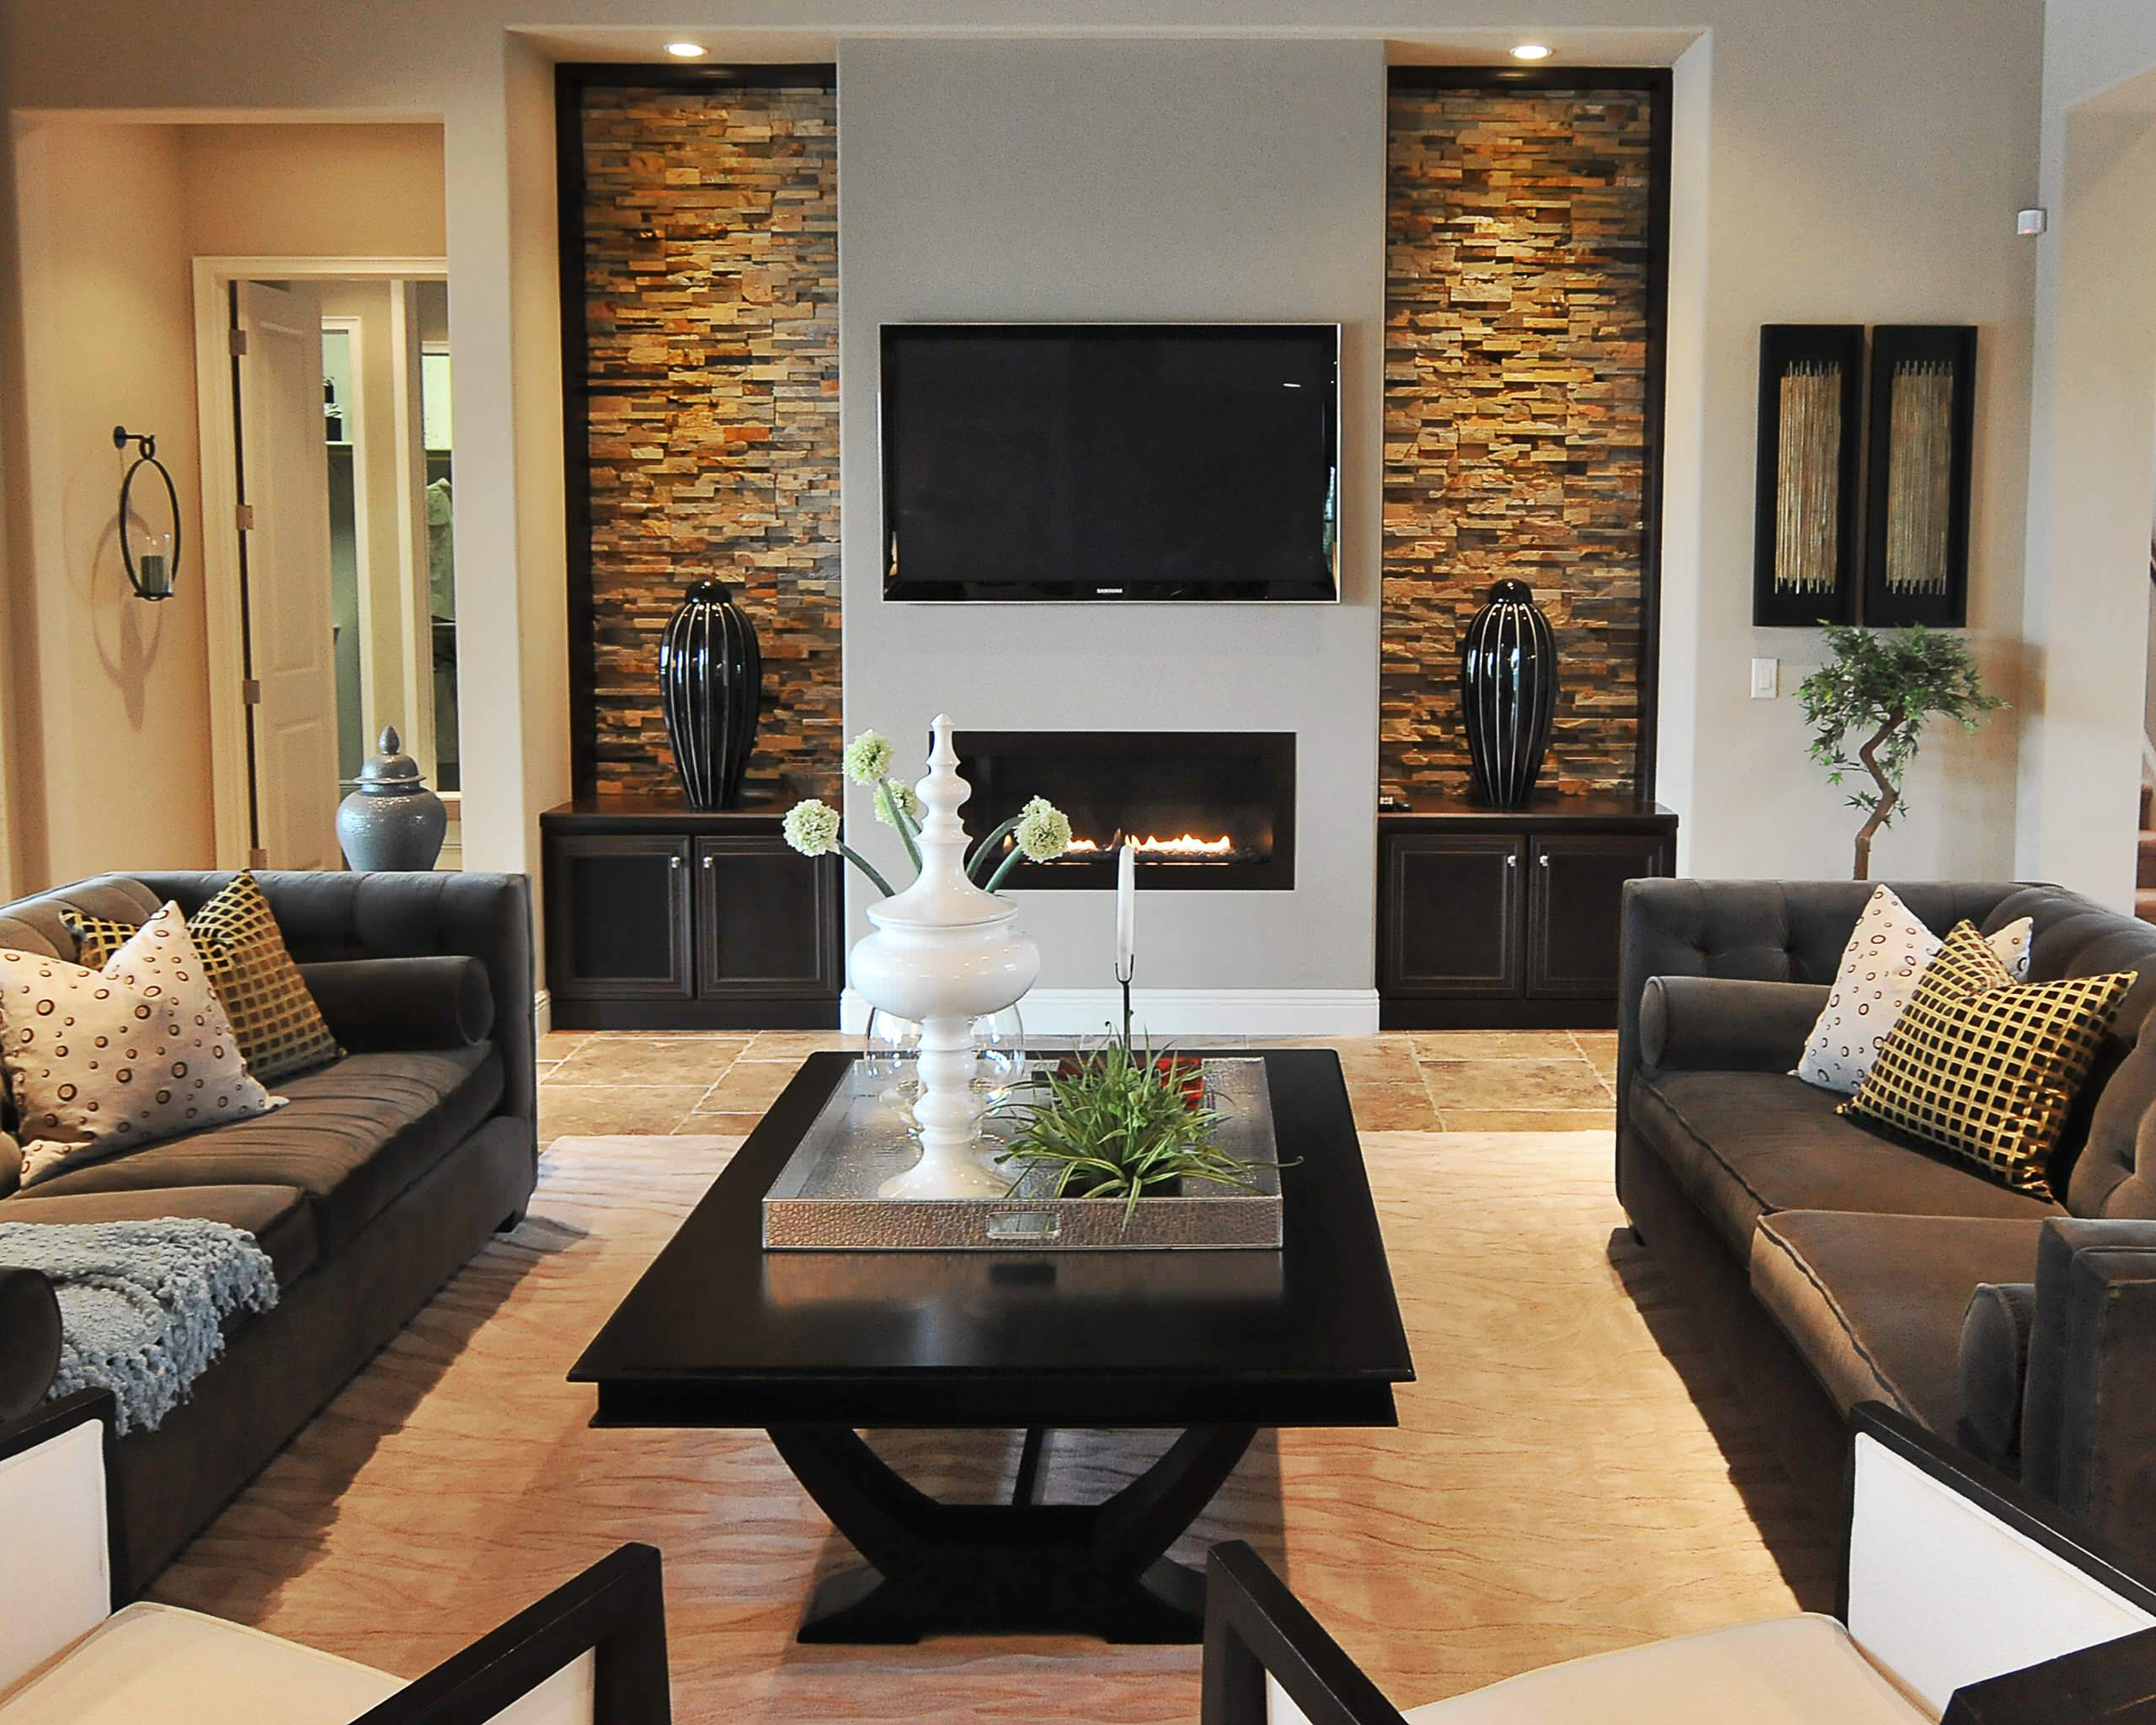 75 Beautiful Living Room With A Wall Mounted Tv Pictures Ideas April 2021 Houzz